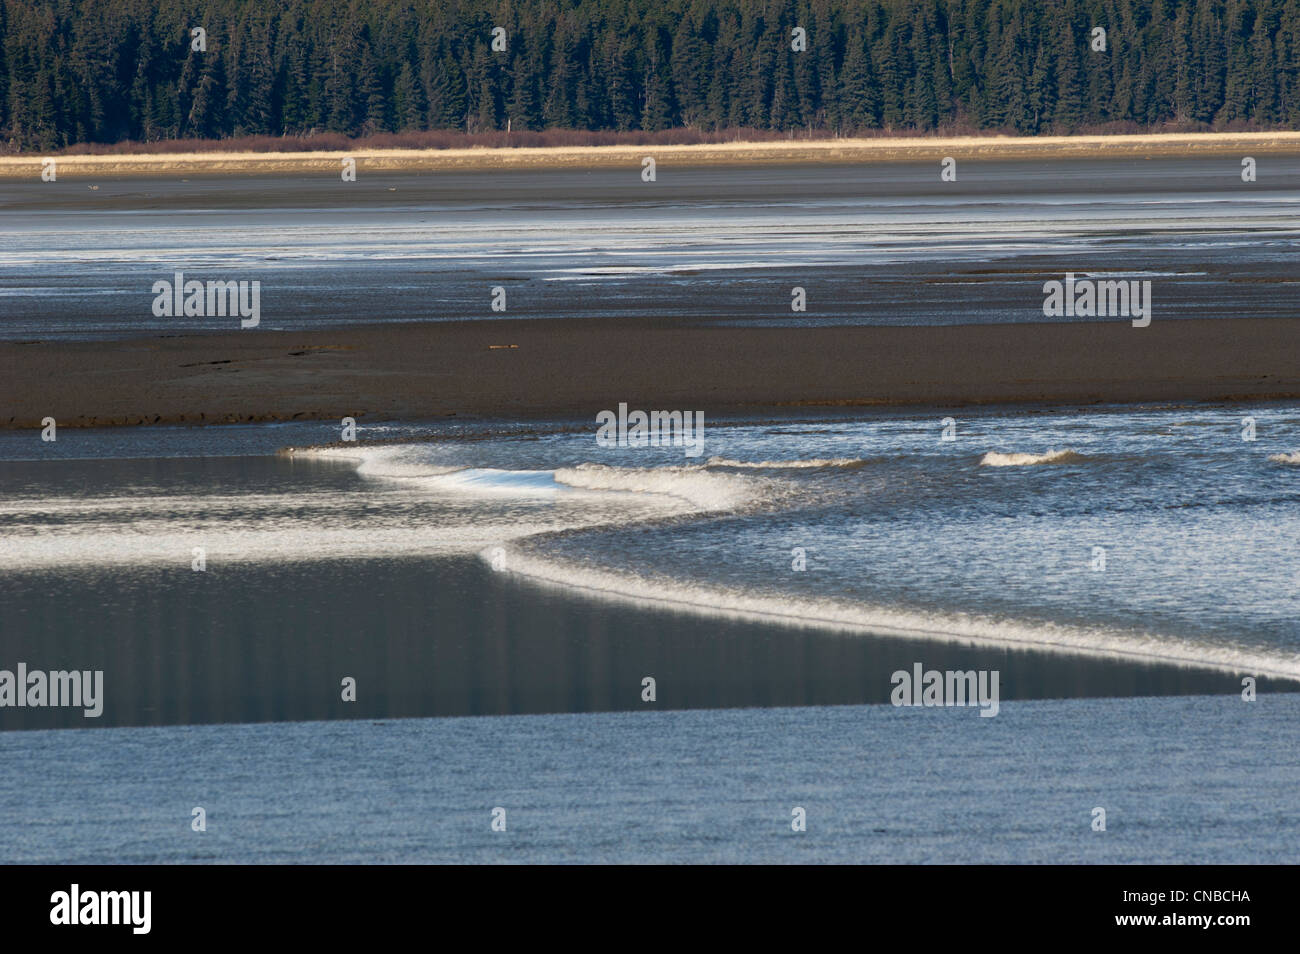 A bore tide rolls up the Turnagain Arm, Southcentral Alaska, Spring - Stock Image